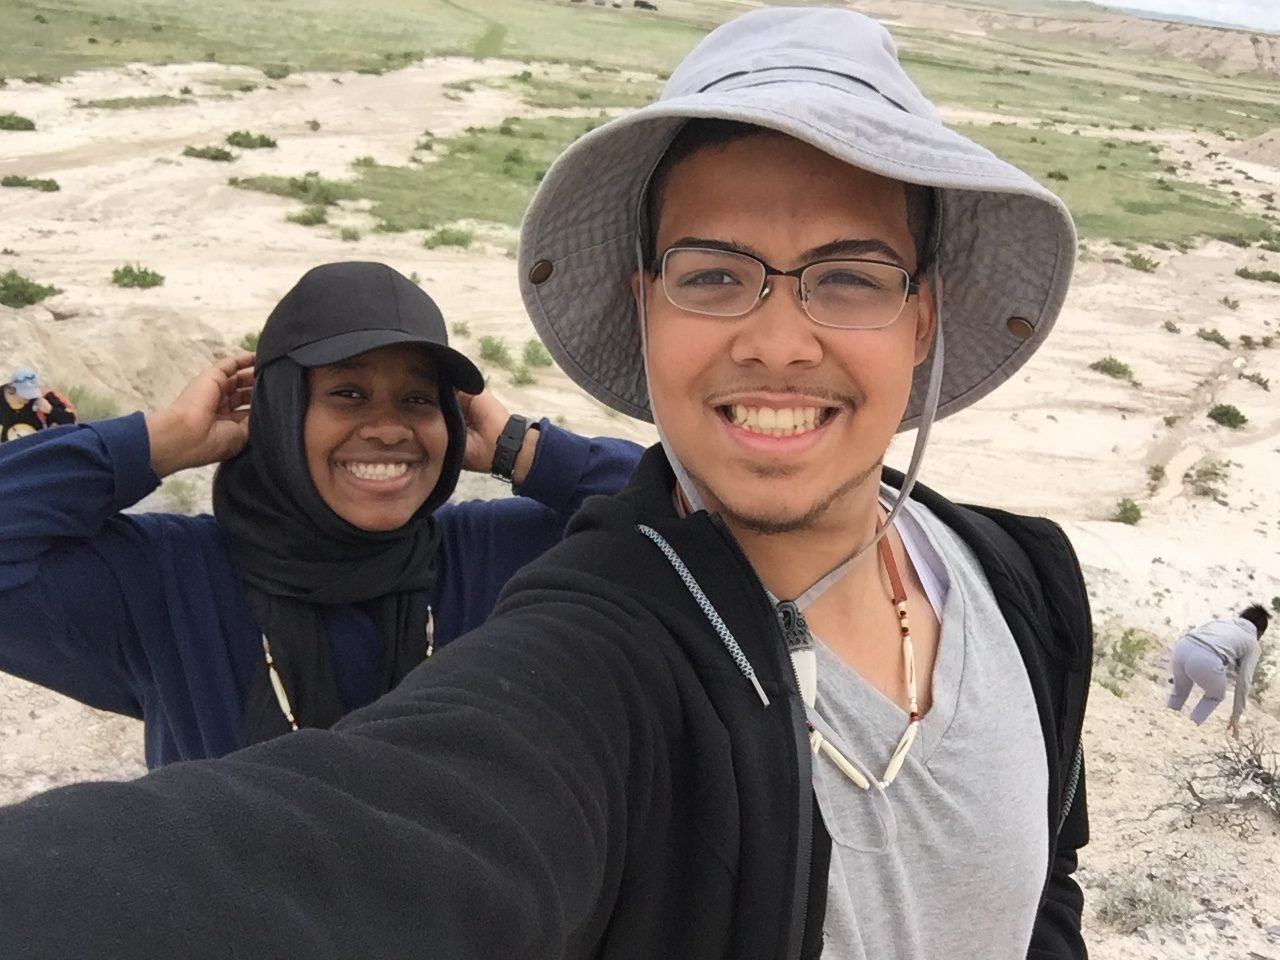 anthony and aya selfie at badlands